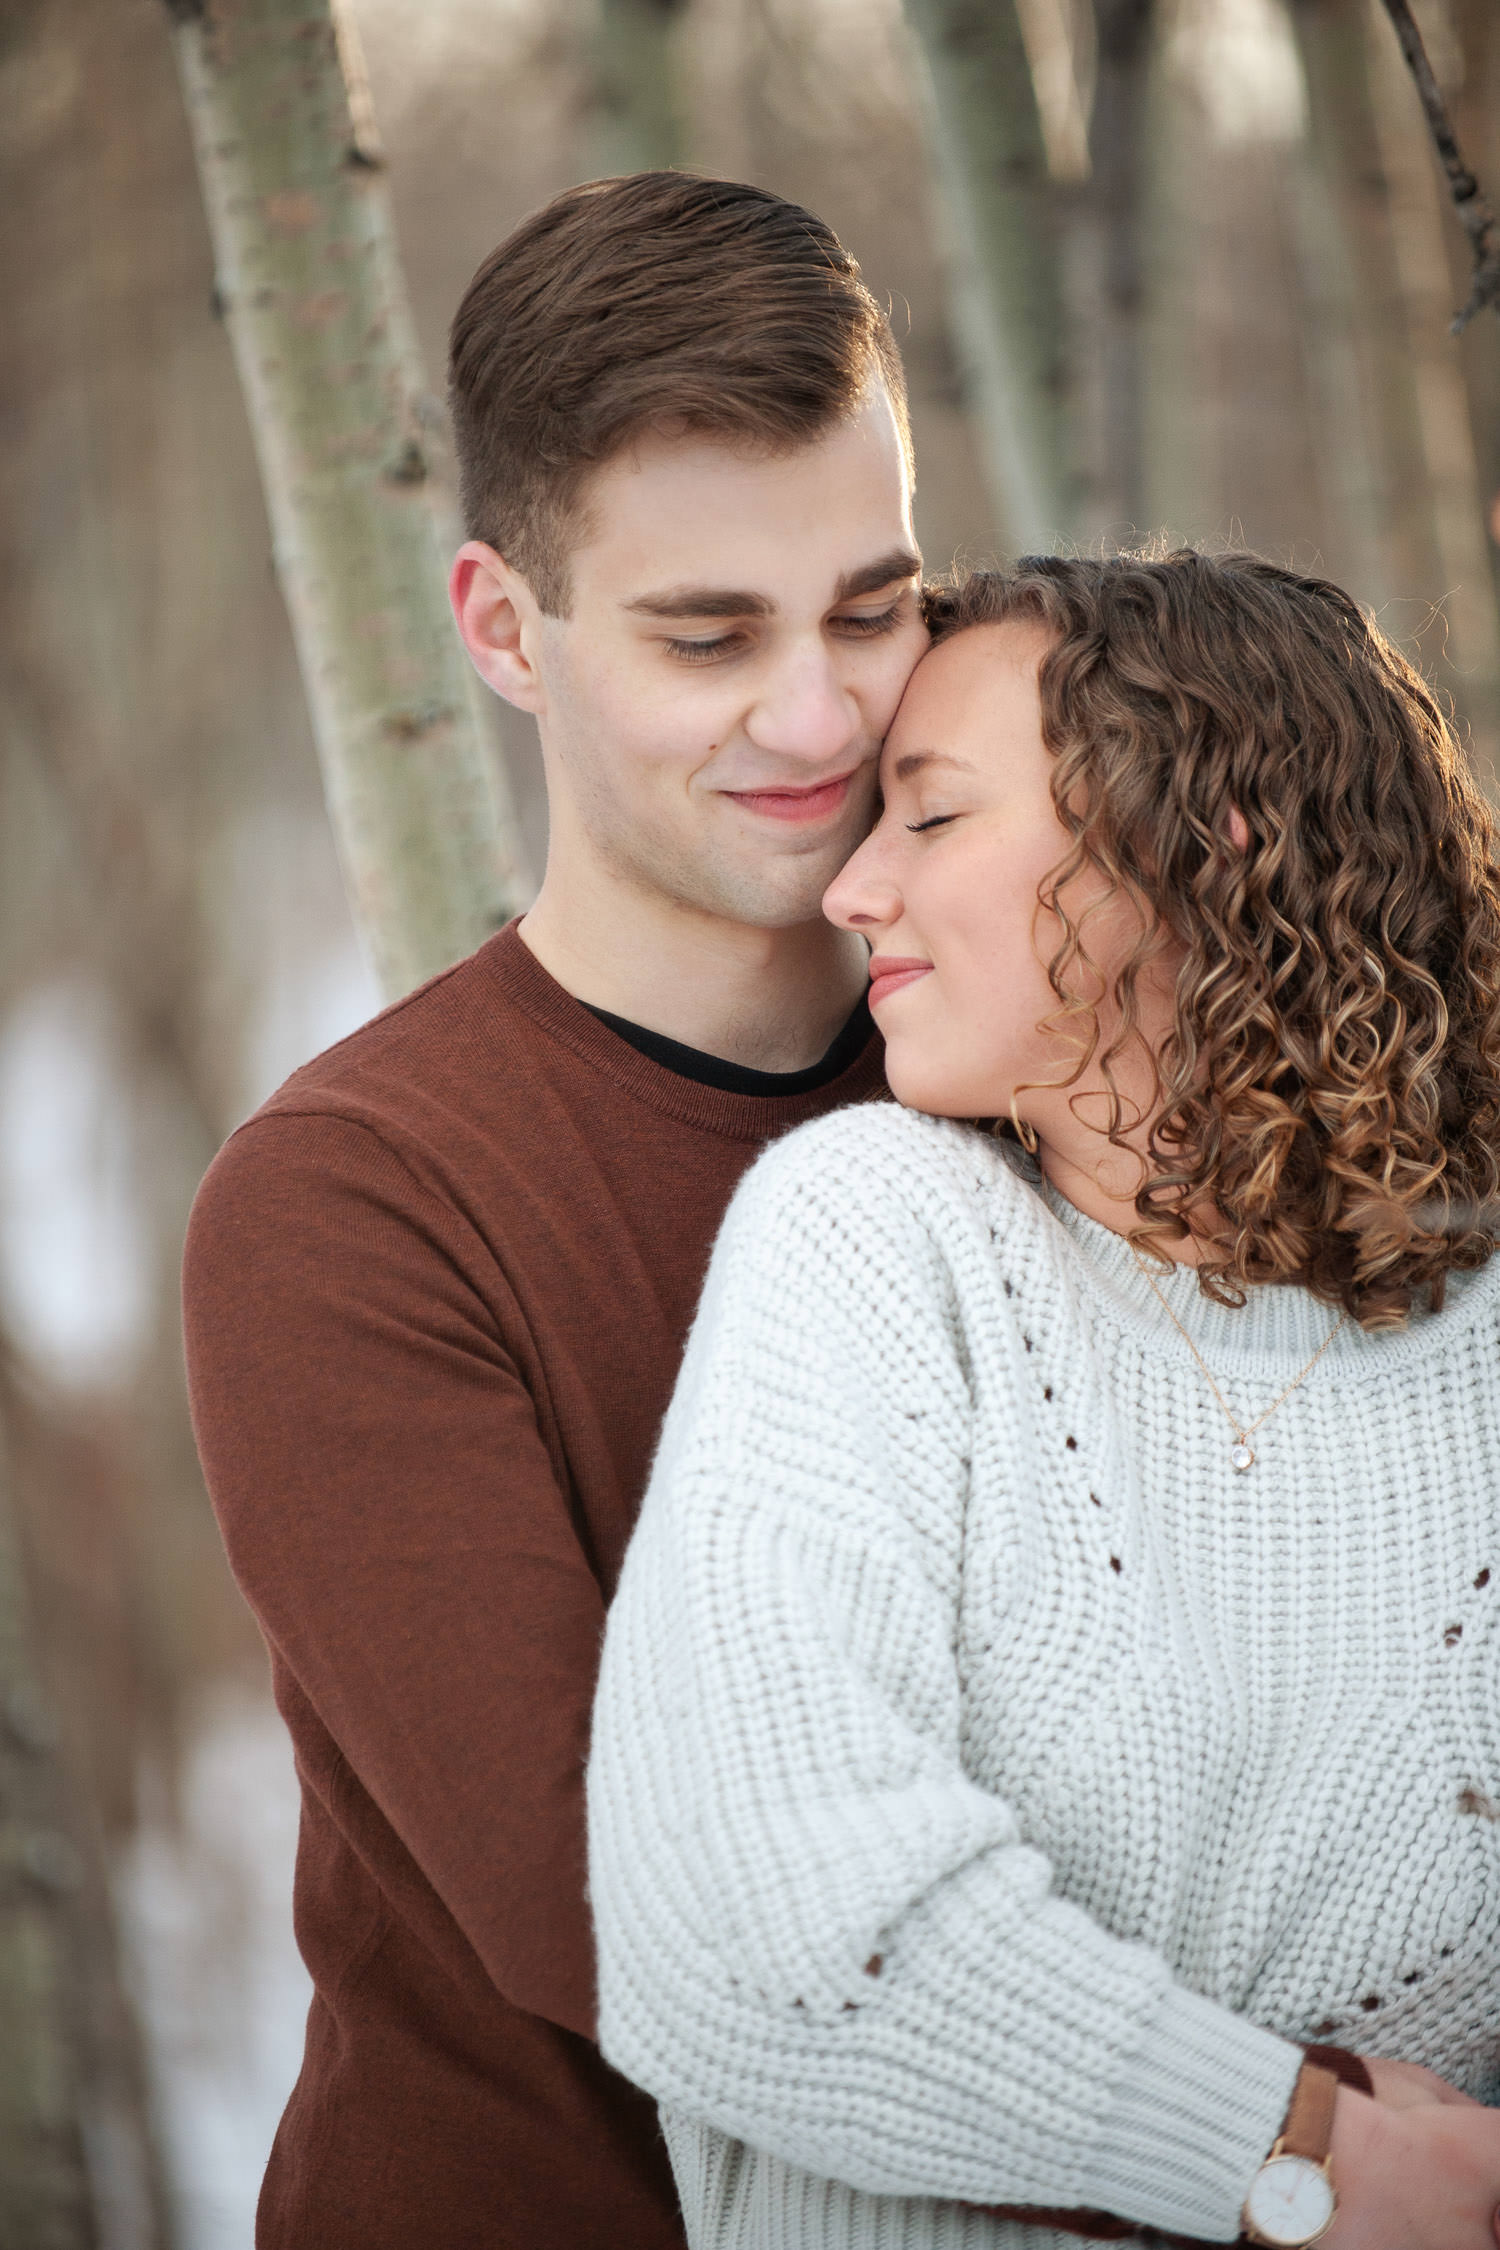 Sweet moment during winter engagement session at Edworthy Park captured by Tara Whittaker Photography